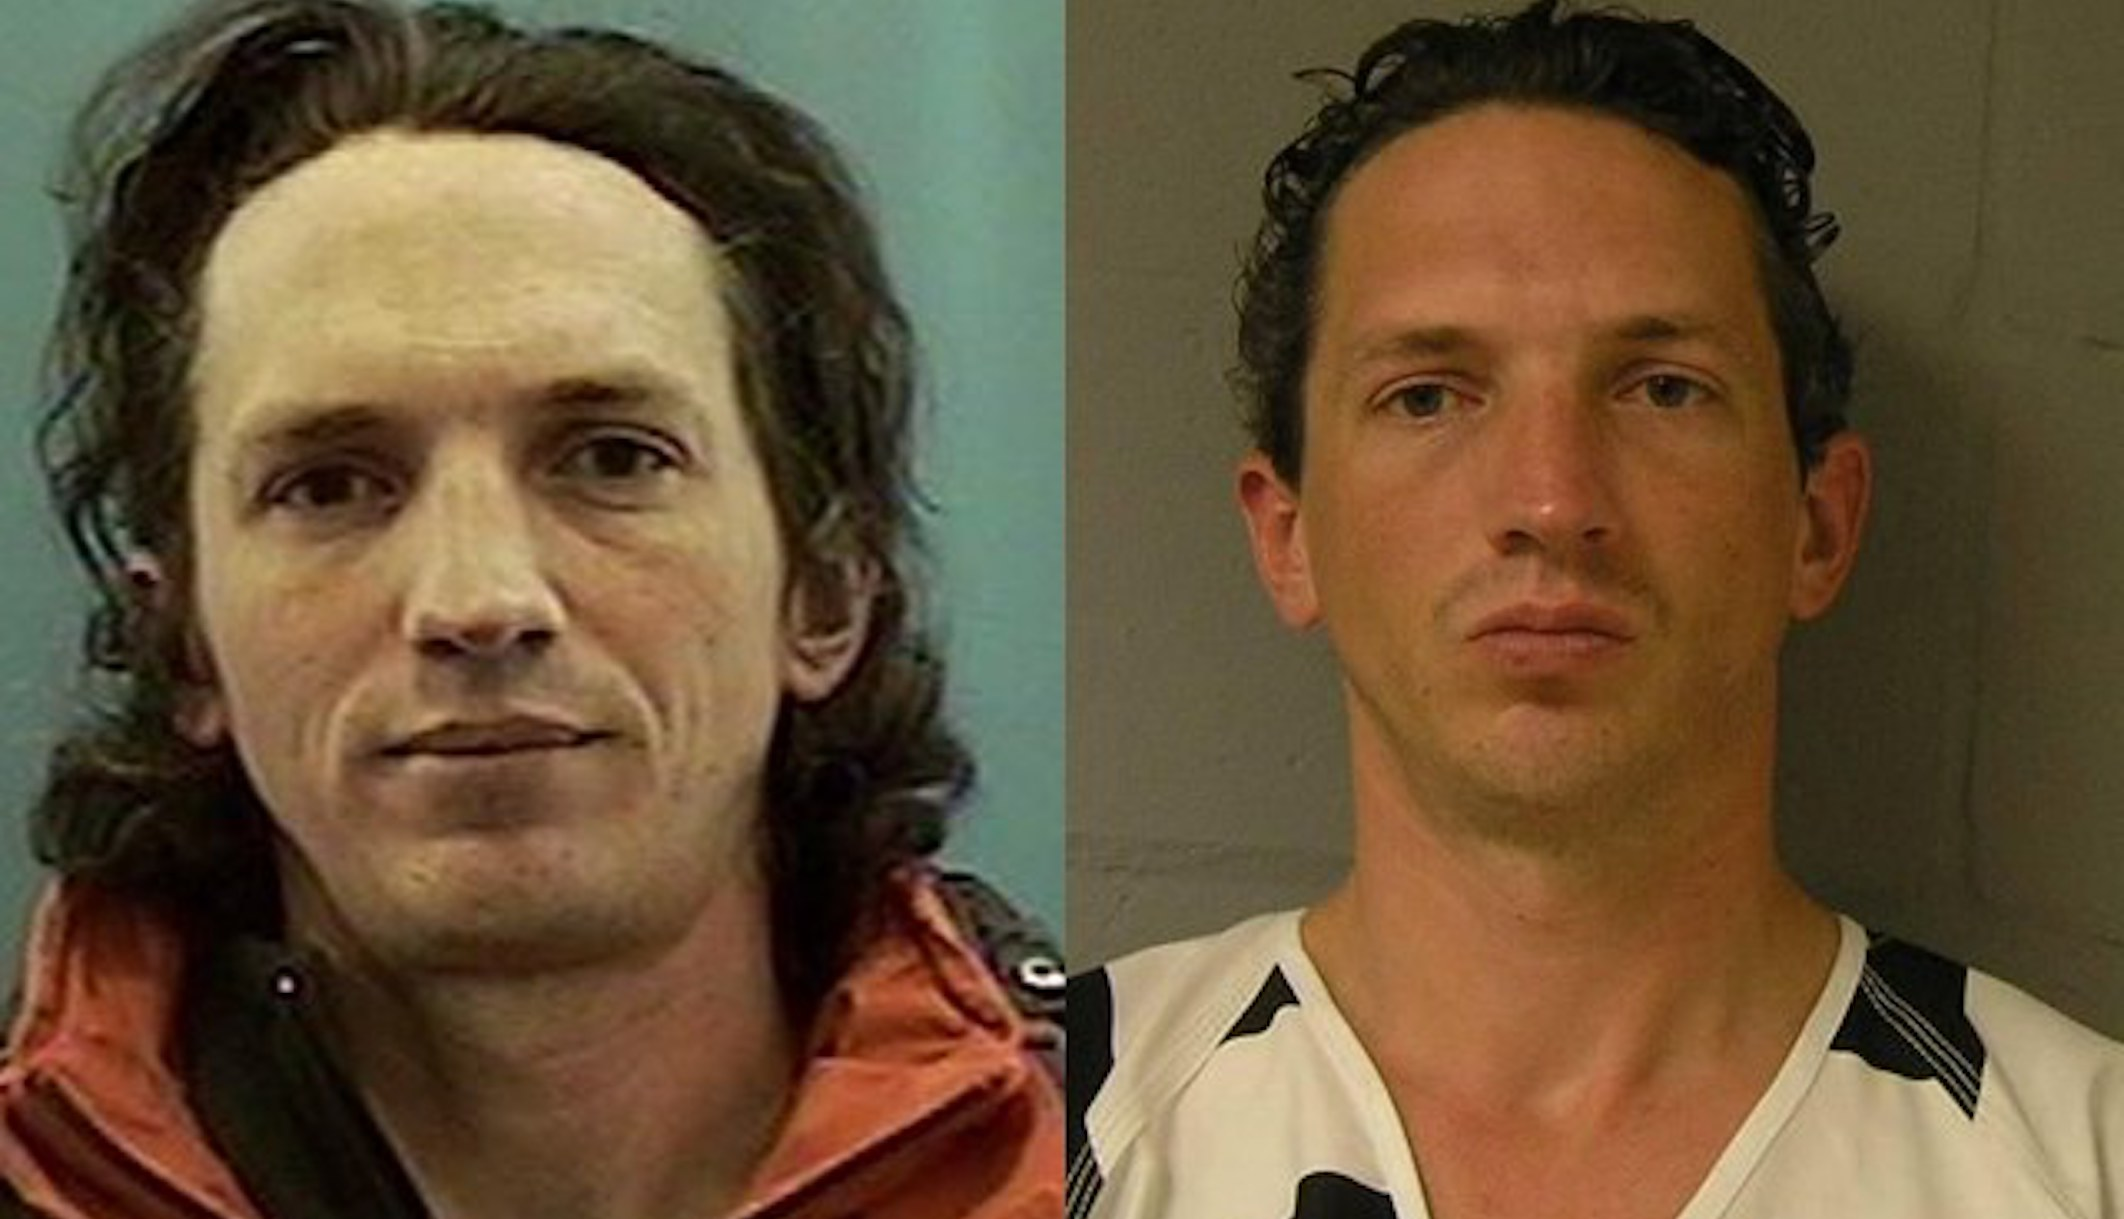 Israel Keyes Victims: Everything We Know About The Alaska Serial